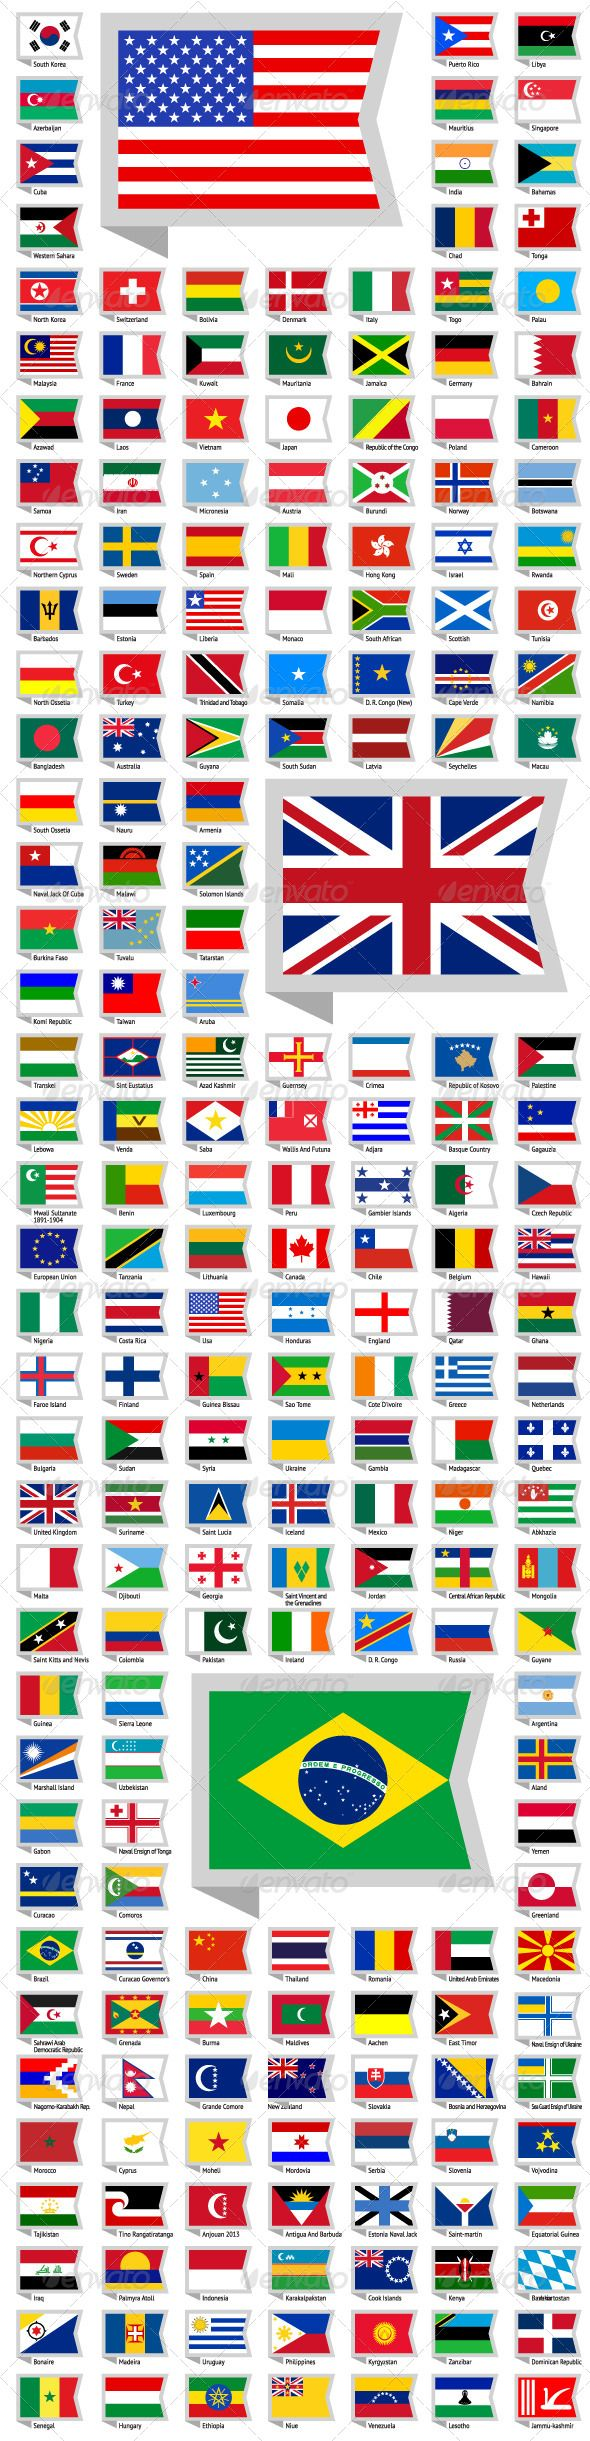 219 Flags of World ...  all national flags, america, atlas, background, badge, continent, country, design elements, east, flag, flat icons, geography, government, land, map, national, navigation, north, oceania, pictogram, republic, sign, south, sovereign state, states, symbols, travel, web, west, world